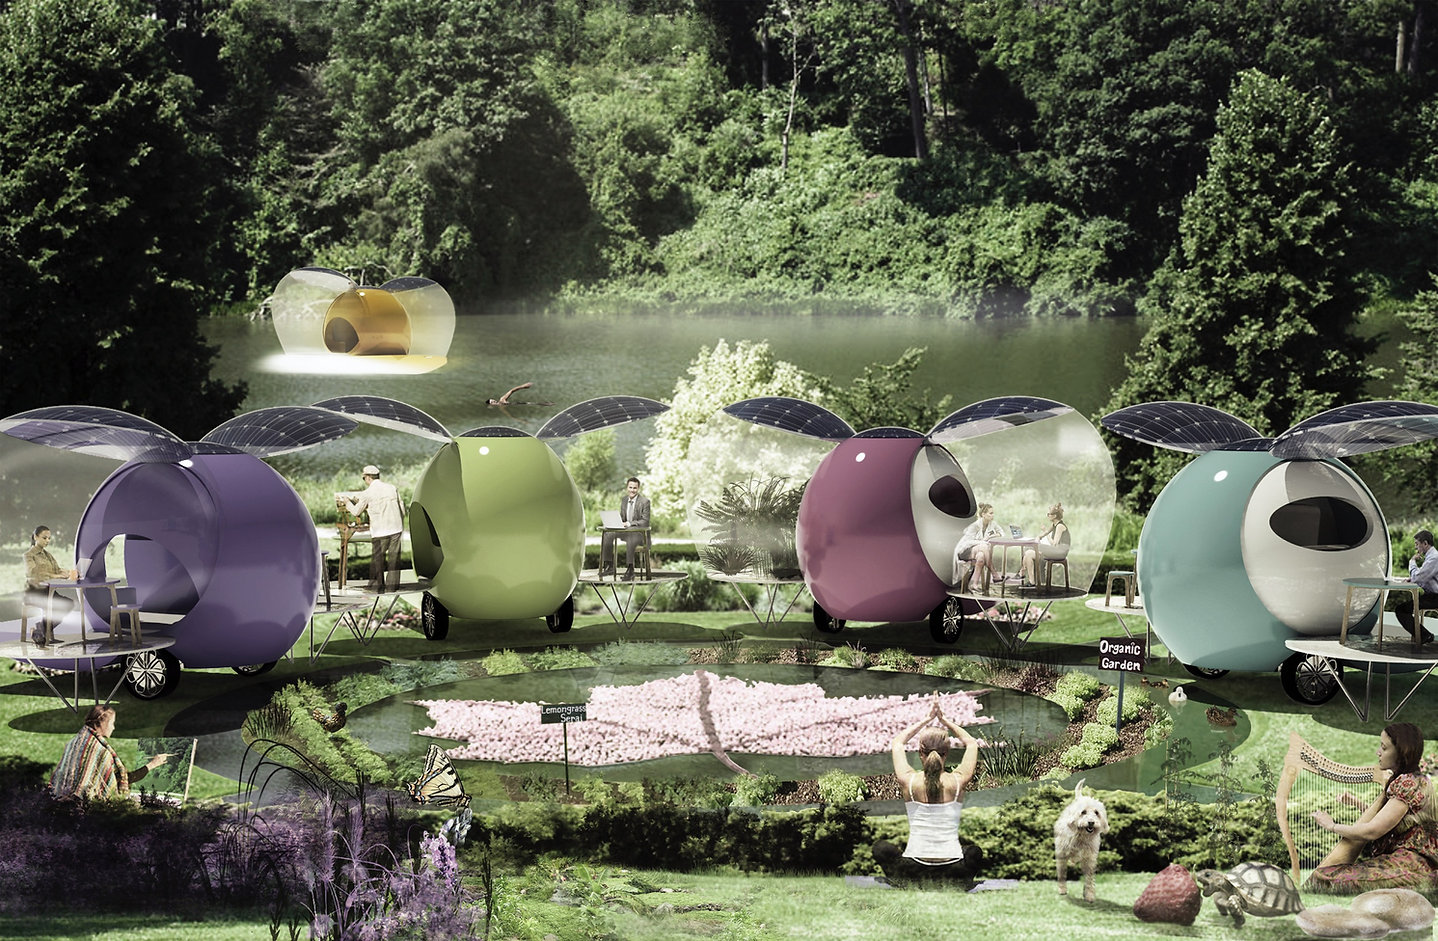 A few people in different BioPOds surrounded by water and nature